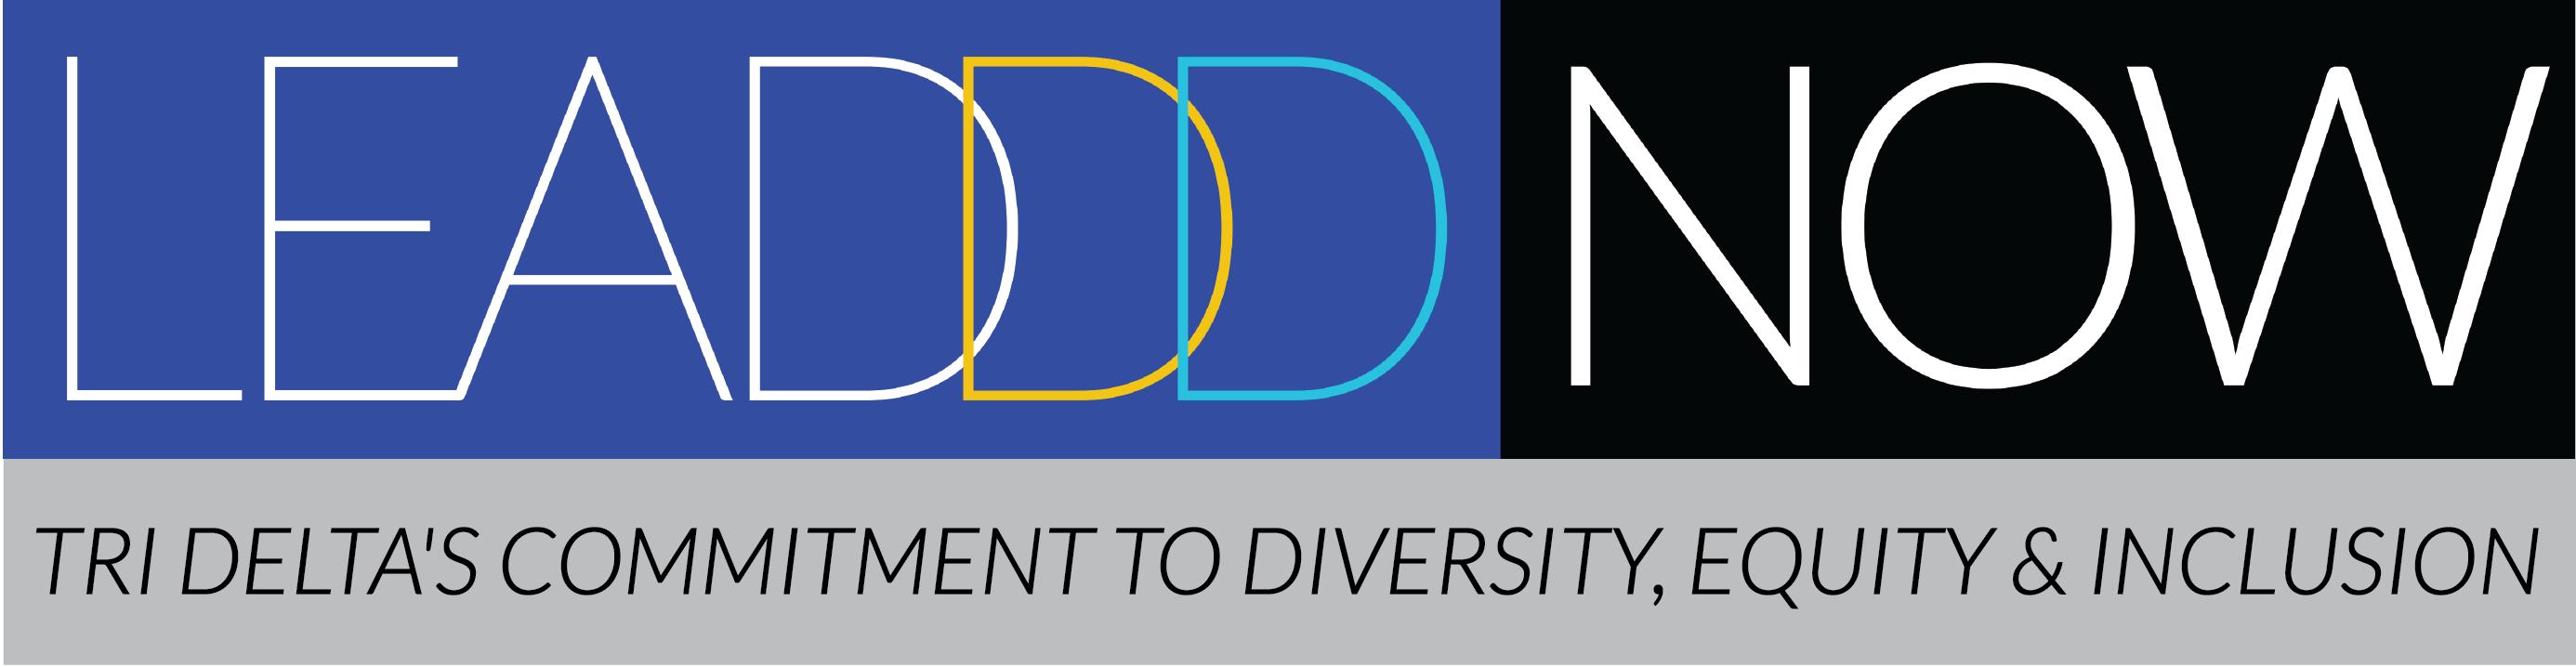 LEADDD Now: Tri Delta's Commitment to Diversity, Equity and Inclusion